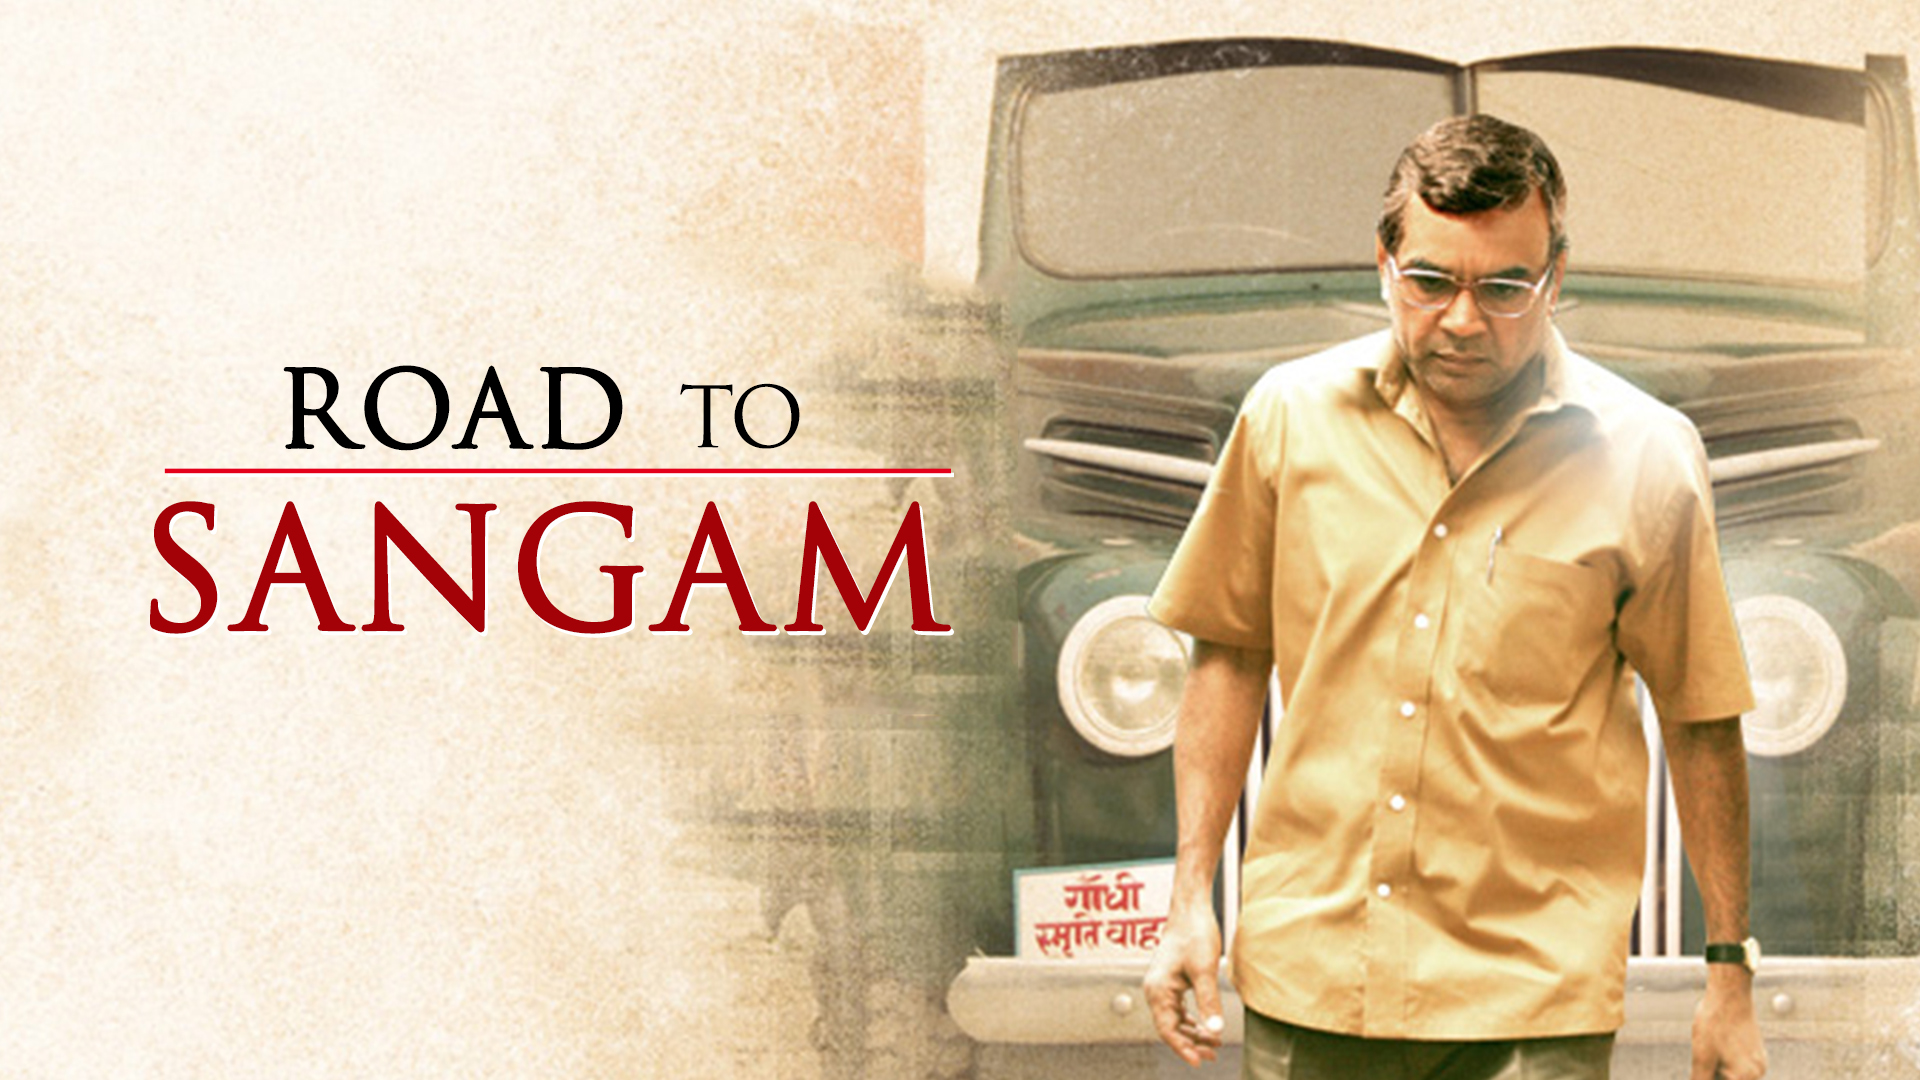 Road to Sangam Movie Poster